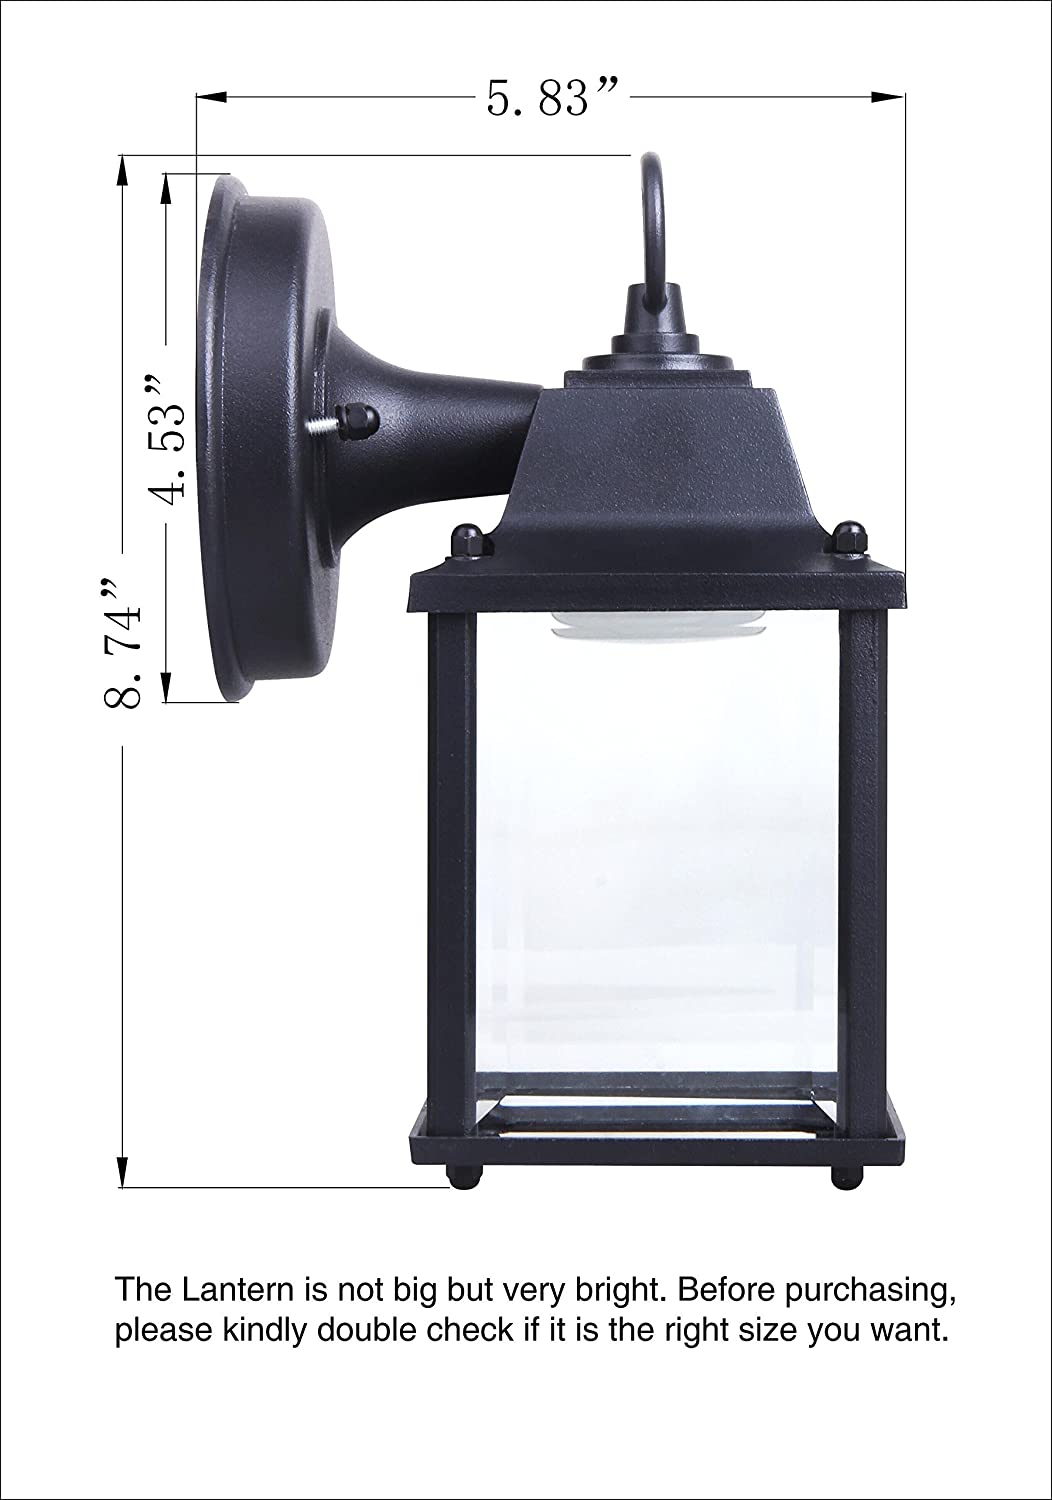 CORAMDEO 2-Pack Outdoor LED Wall Lantern 800 Lumen Aluminum Housing Plus Glass Wall Sconce 9.5W Replace 75W Traditional Lighting Fixtures ETL and Energy Star Certified Water-Proof